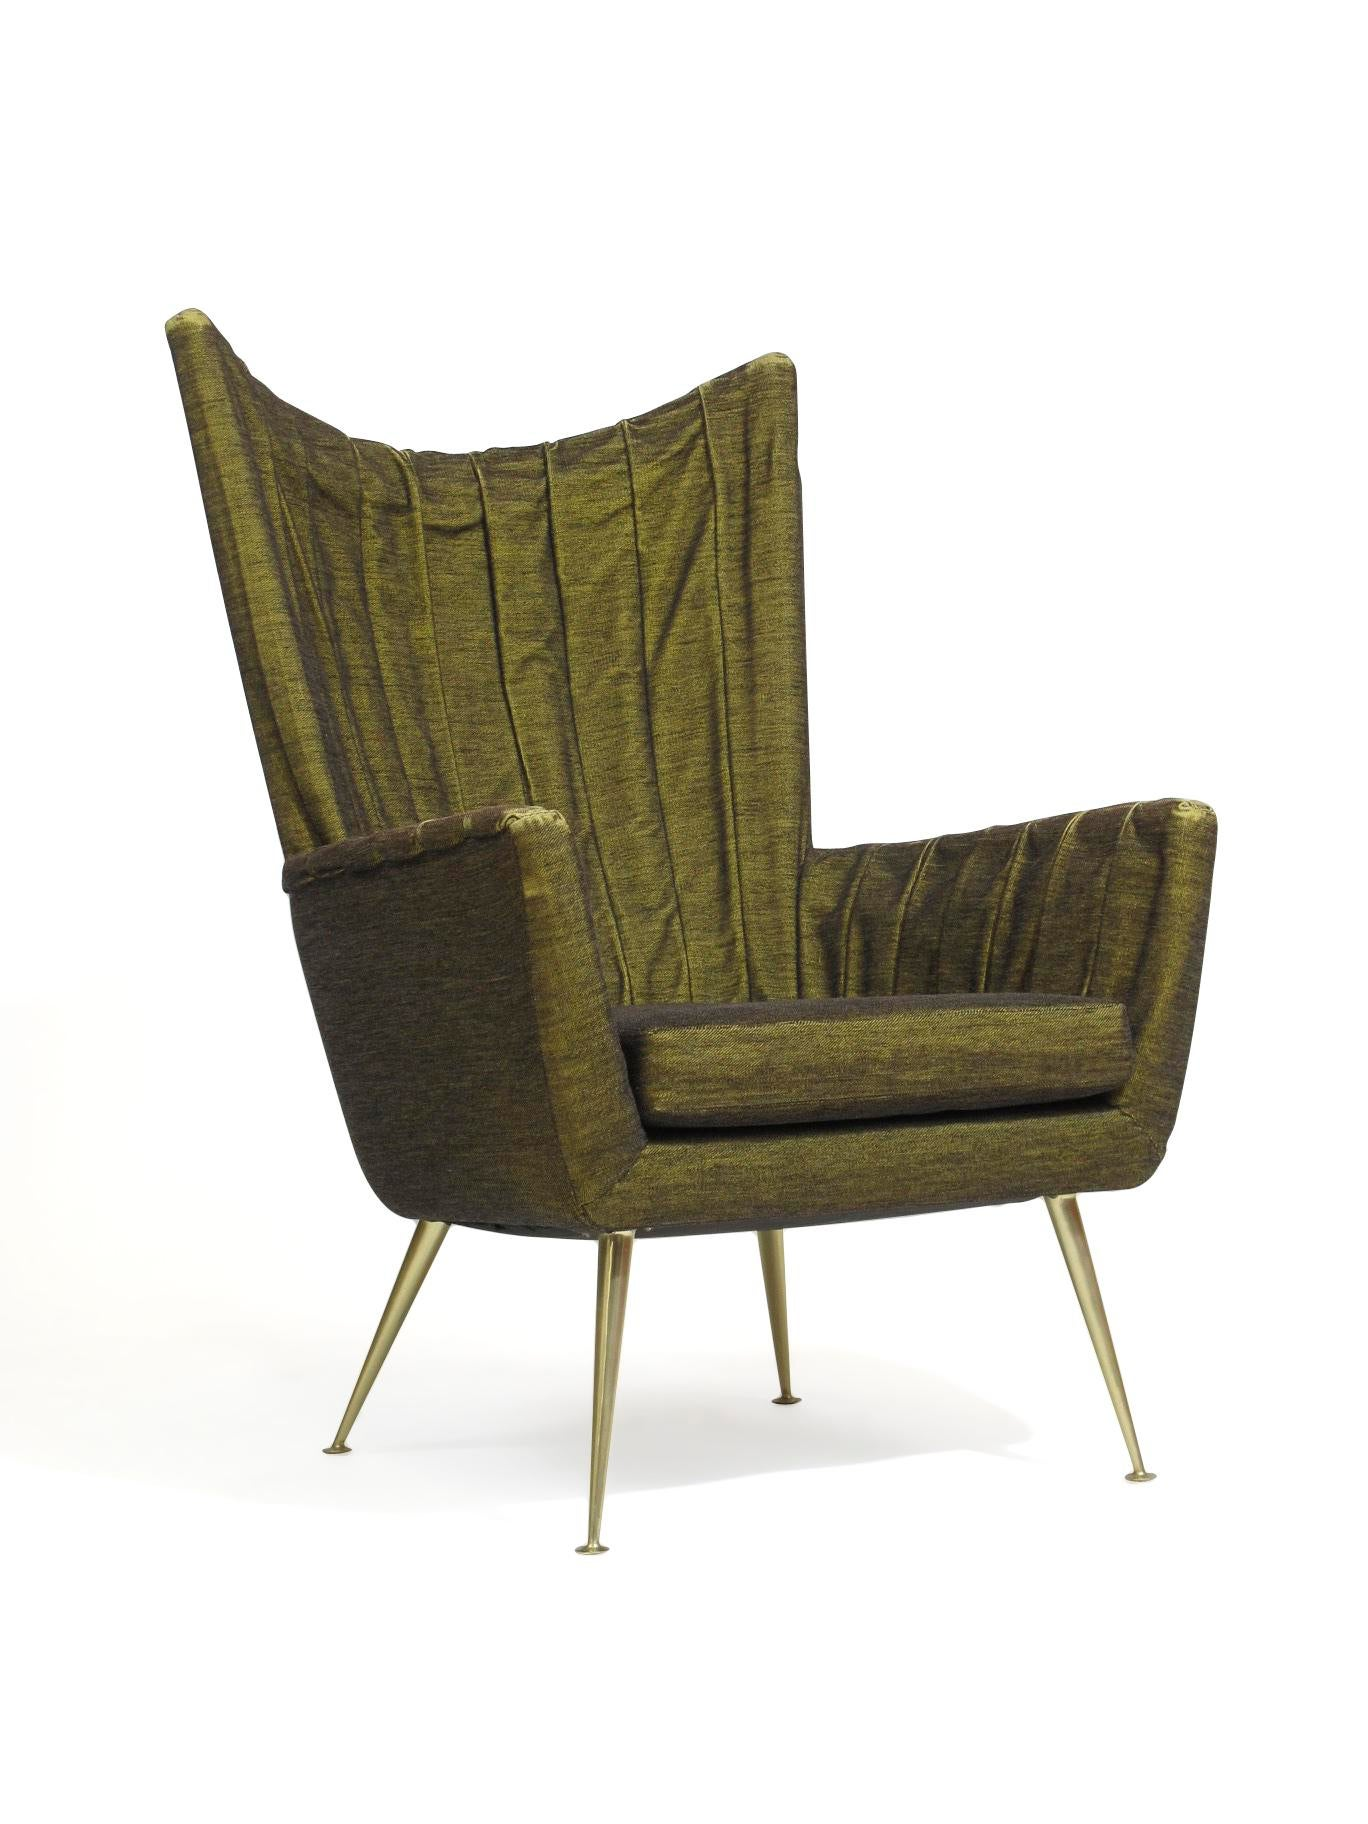 Captivating Pair Of Italian Lounge Chairs In Original Horsehair Fabric For Sale   Image  4 Of 10